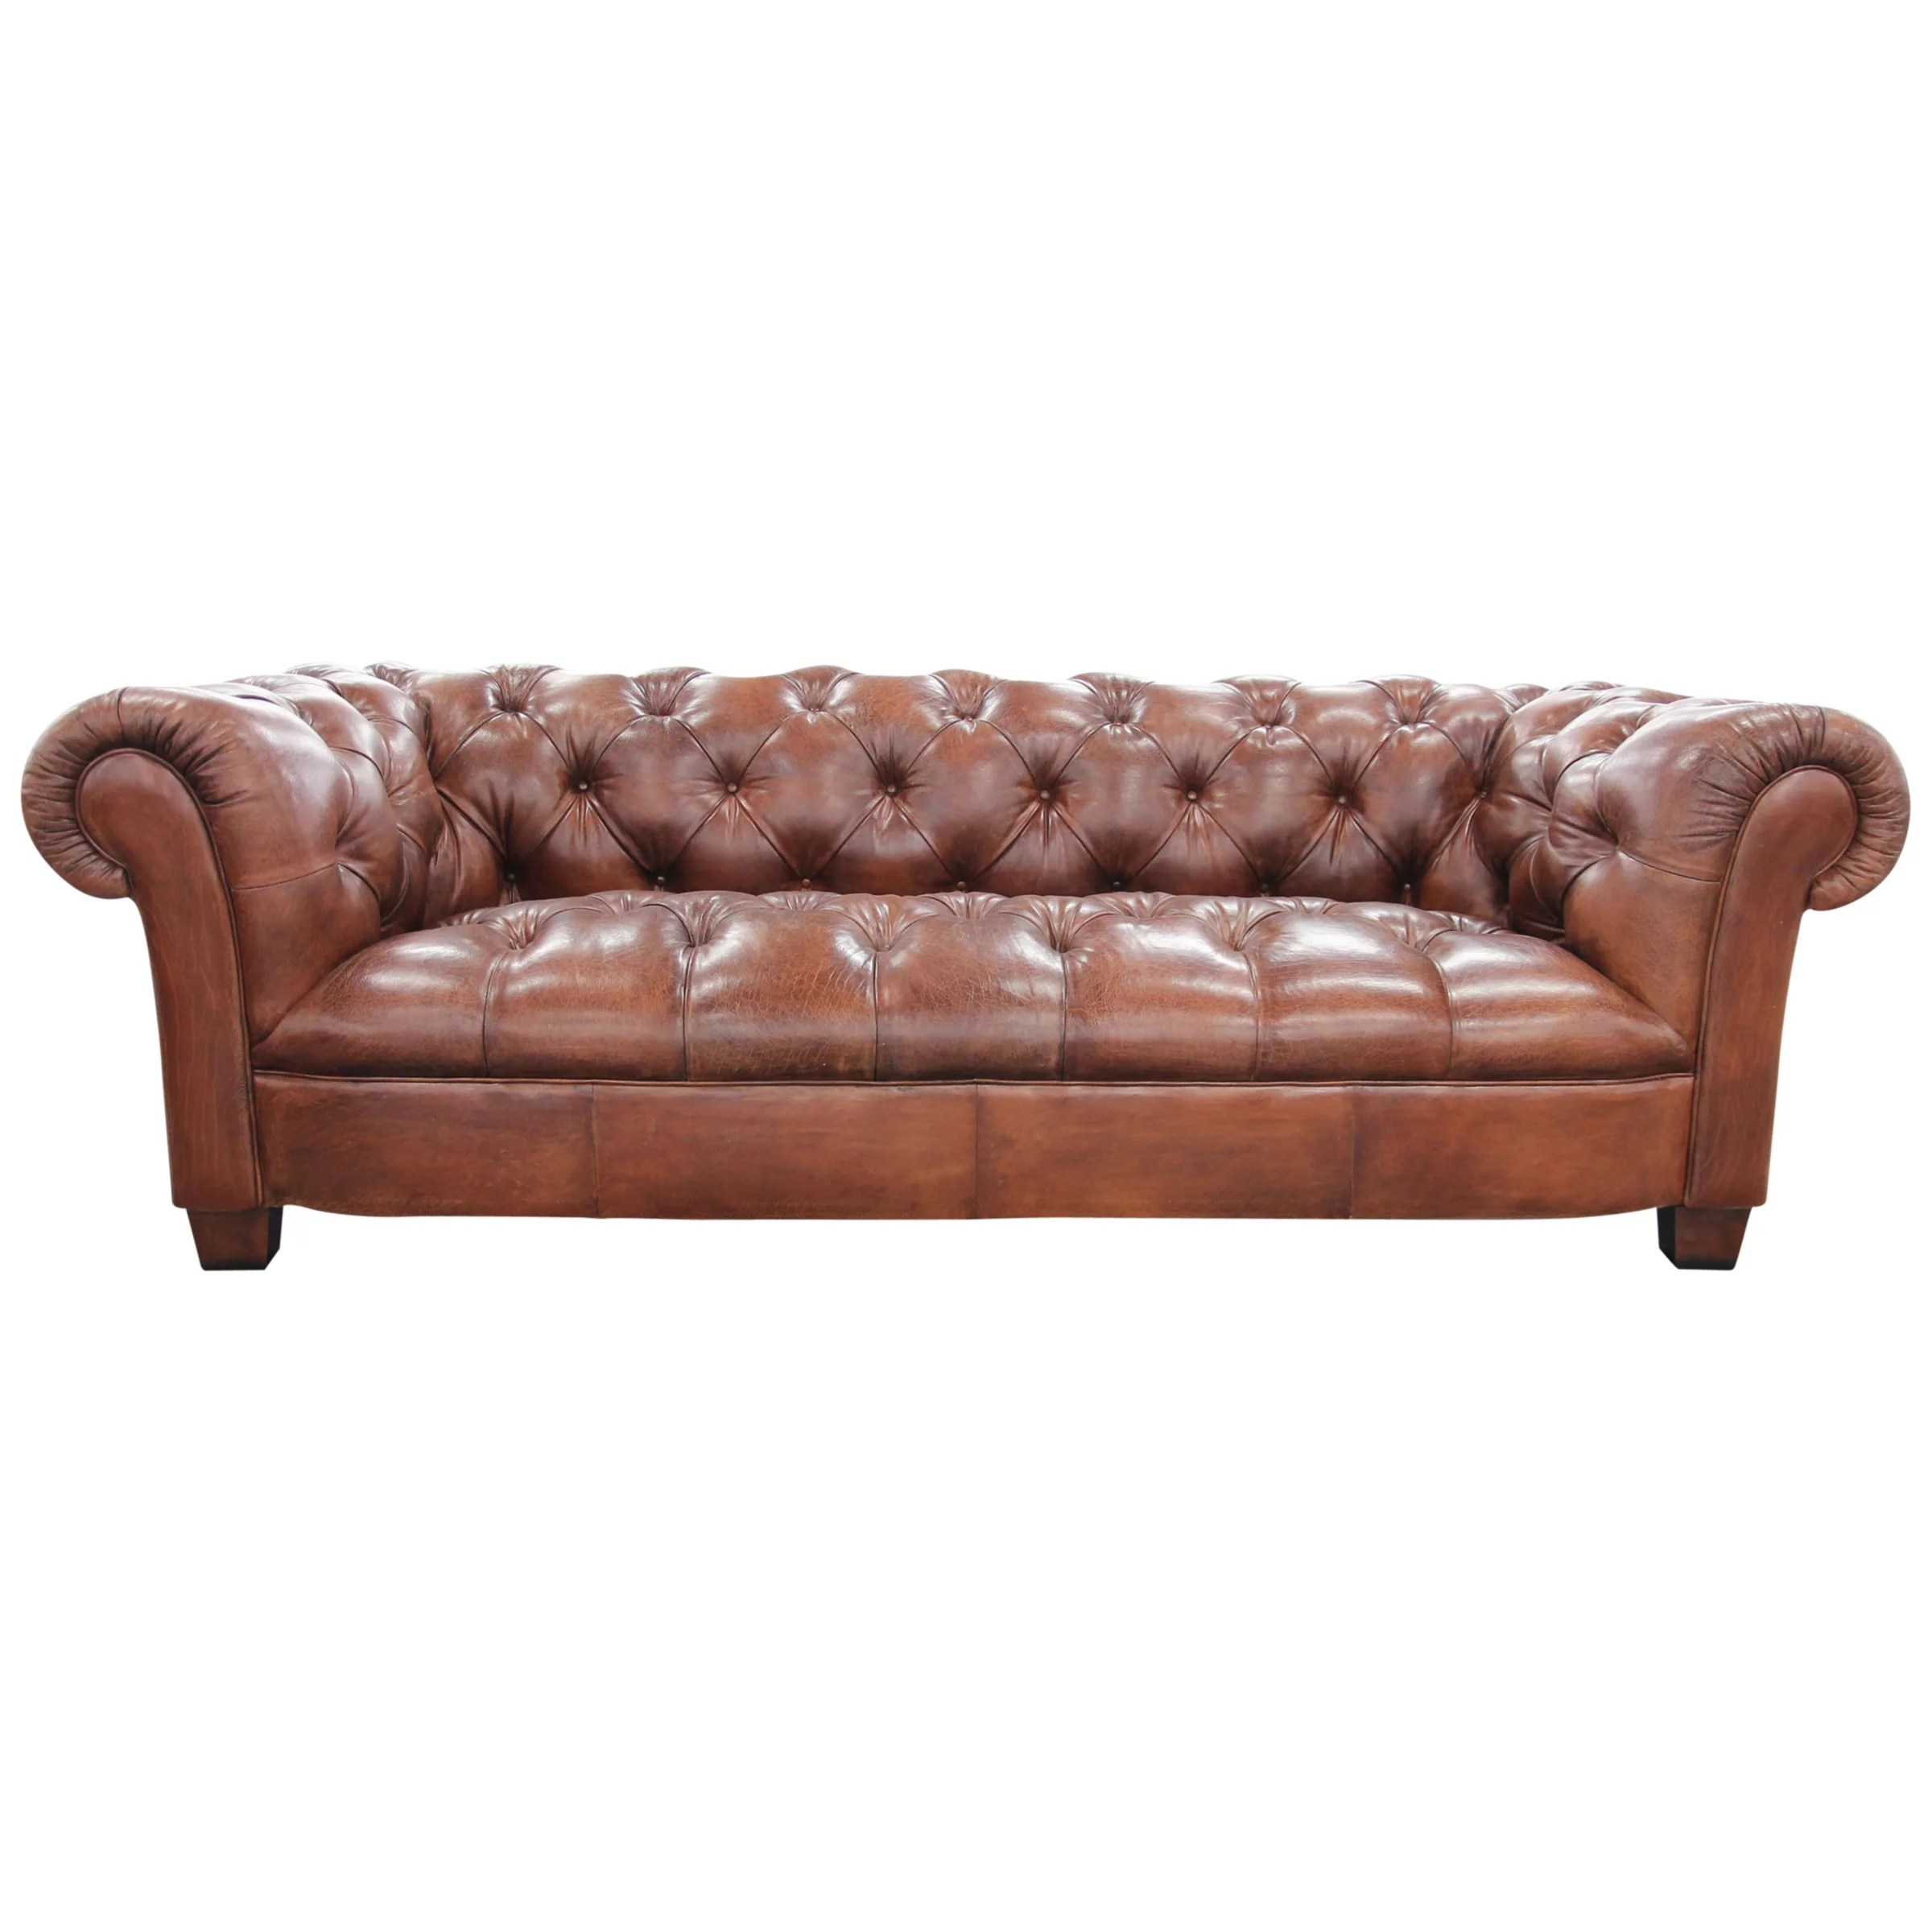 Chesterfield Sofa Online Uk John Lewis Todd Grand Leather Chesterfield Sofa At John Lewis